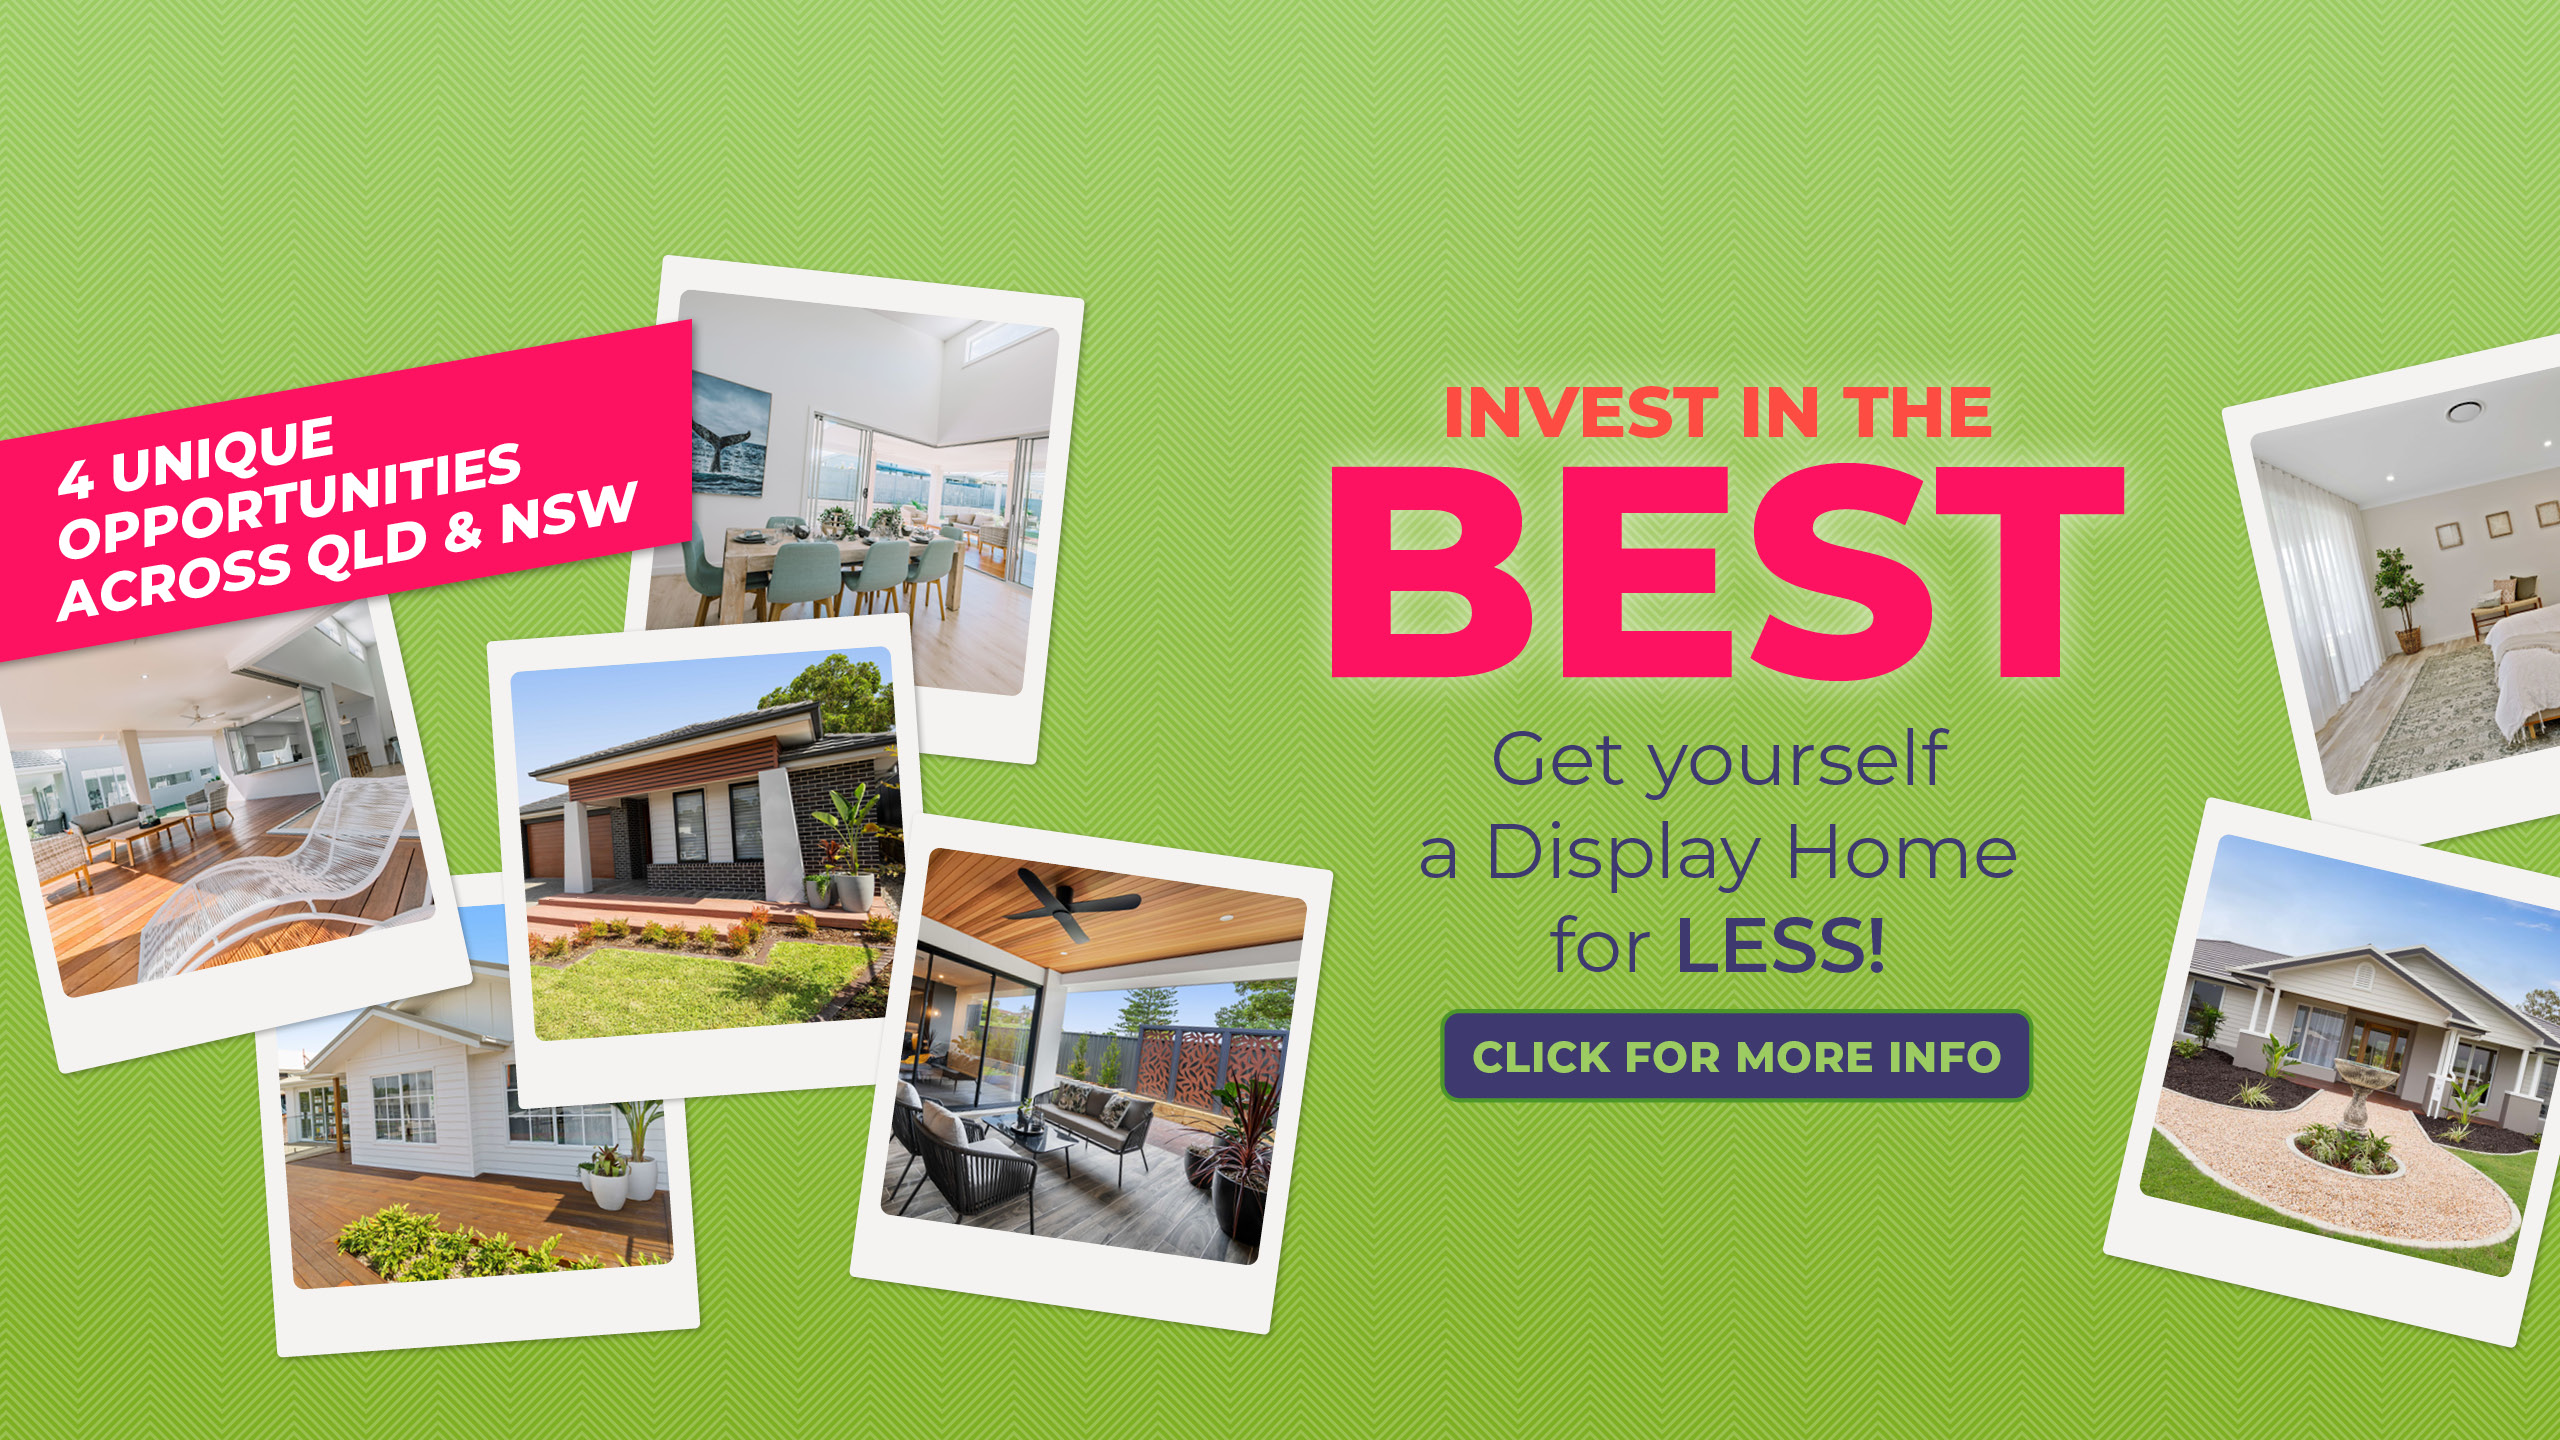 Display Home Investment Banner